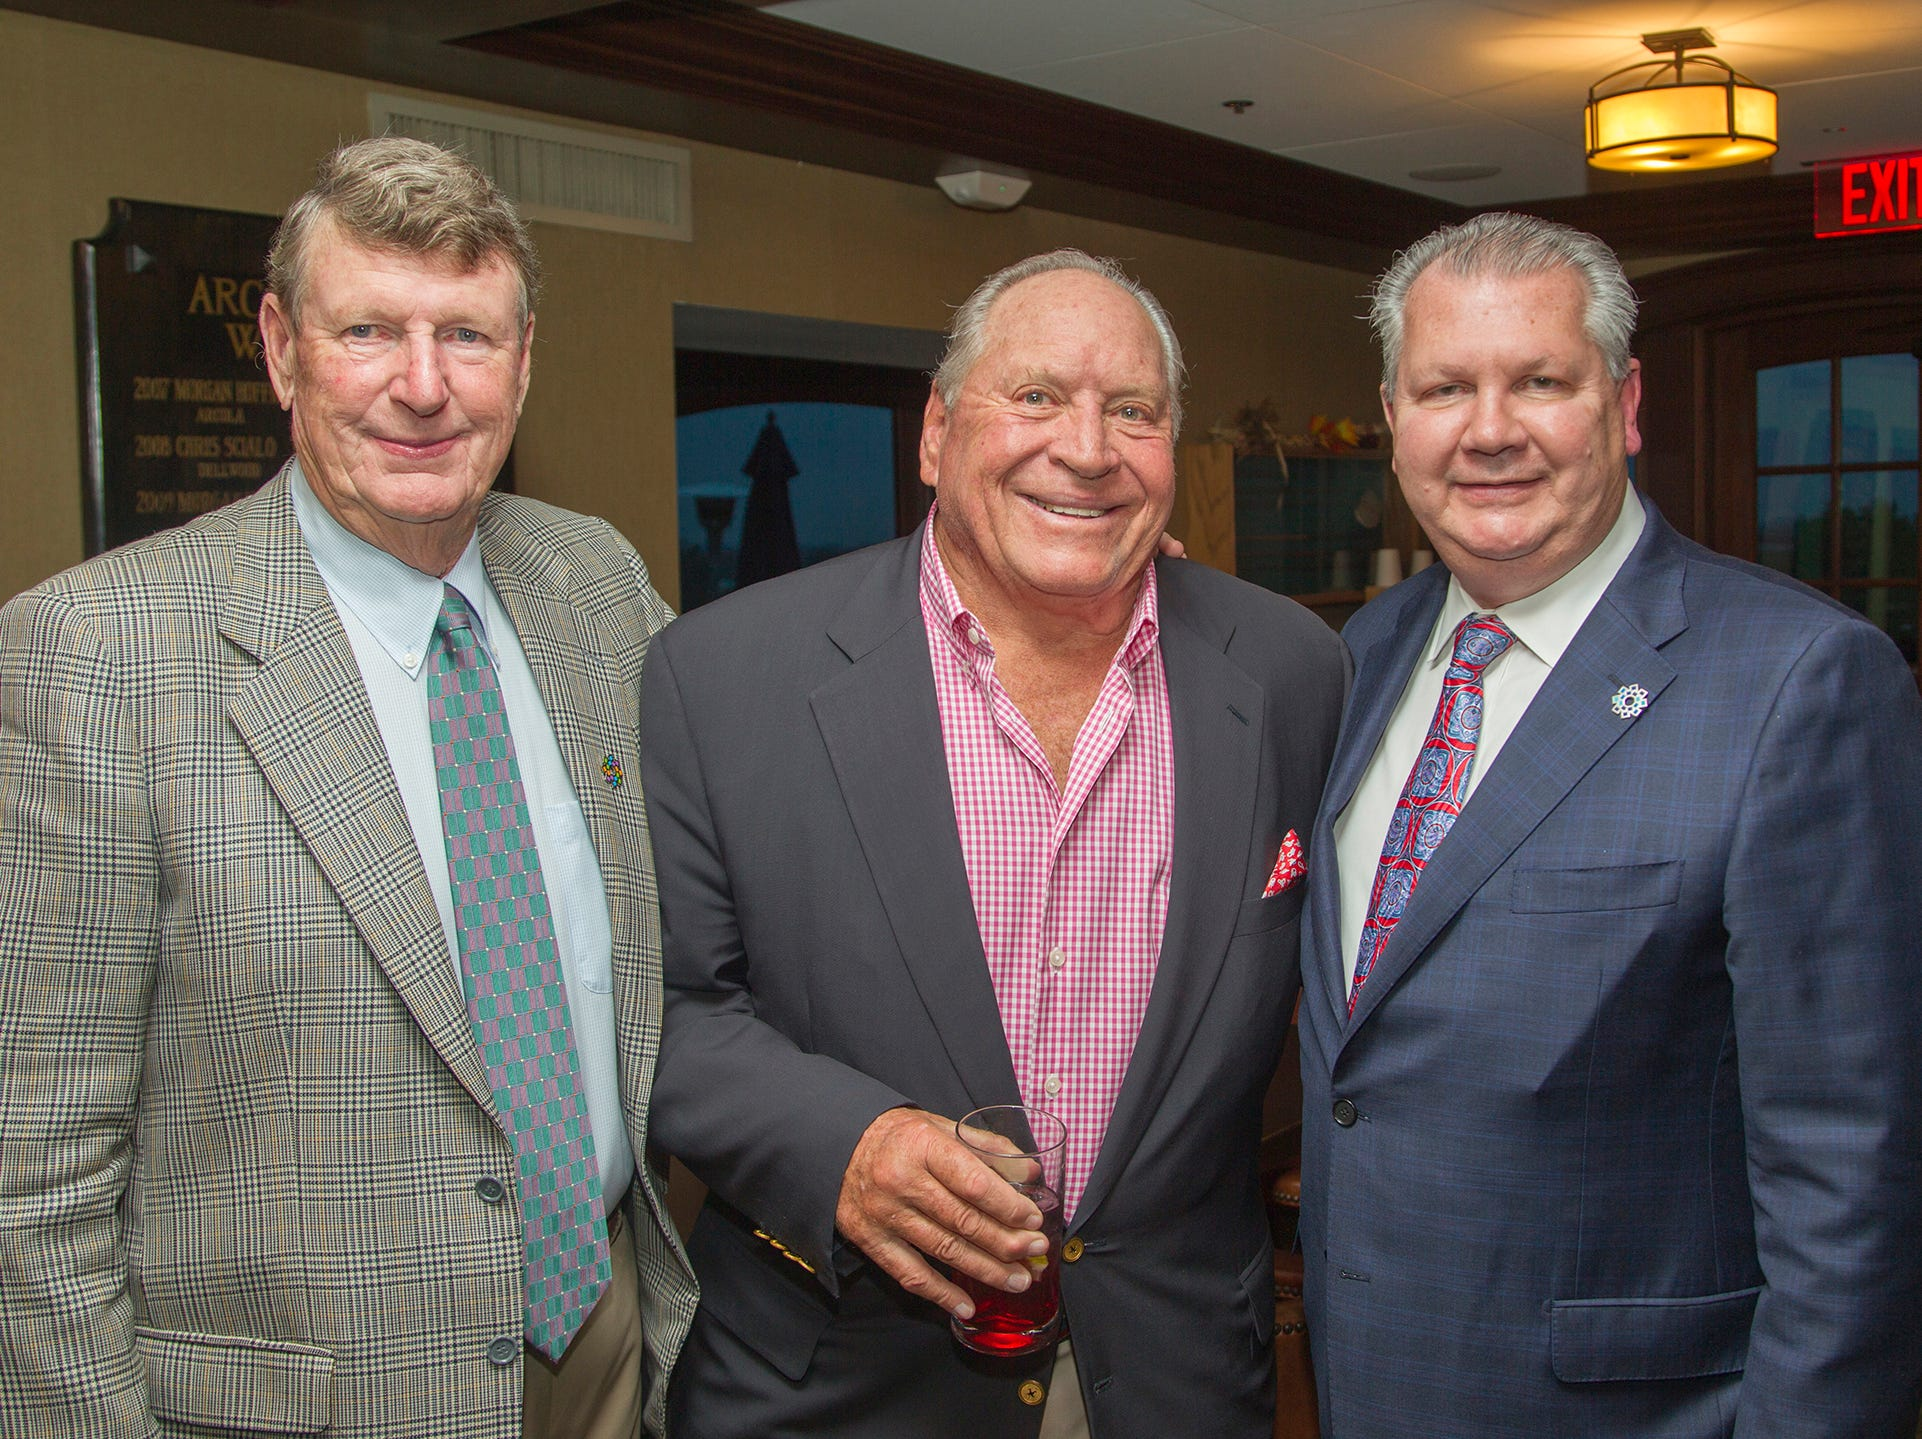 Bill Murray, Dr. Terry Hensel, Dr. Ihor Sawczuk. Seventh annual AIR Express Golf Outing honoring Dr. Dante Implicito, M.D. for his service to Hackensack University Medical Center. 10/16/2018